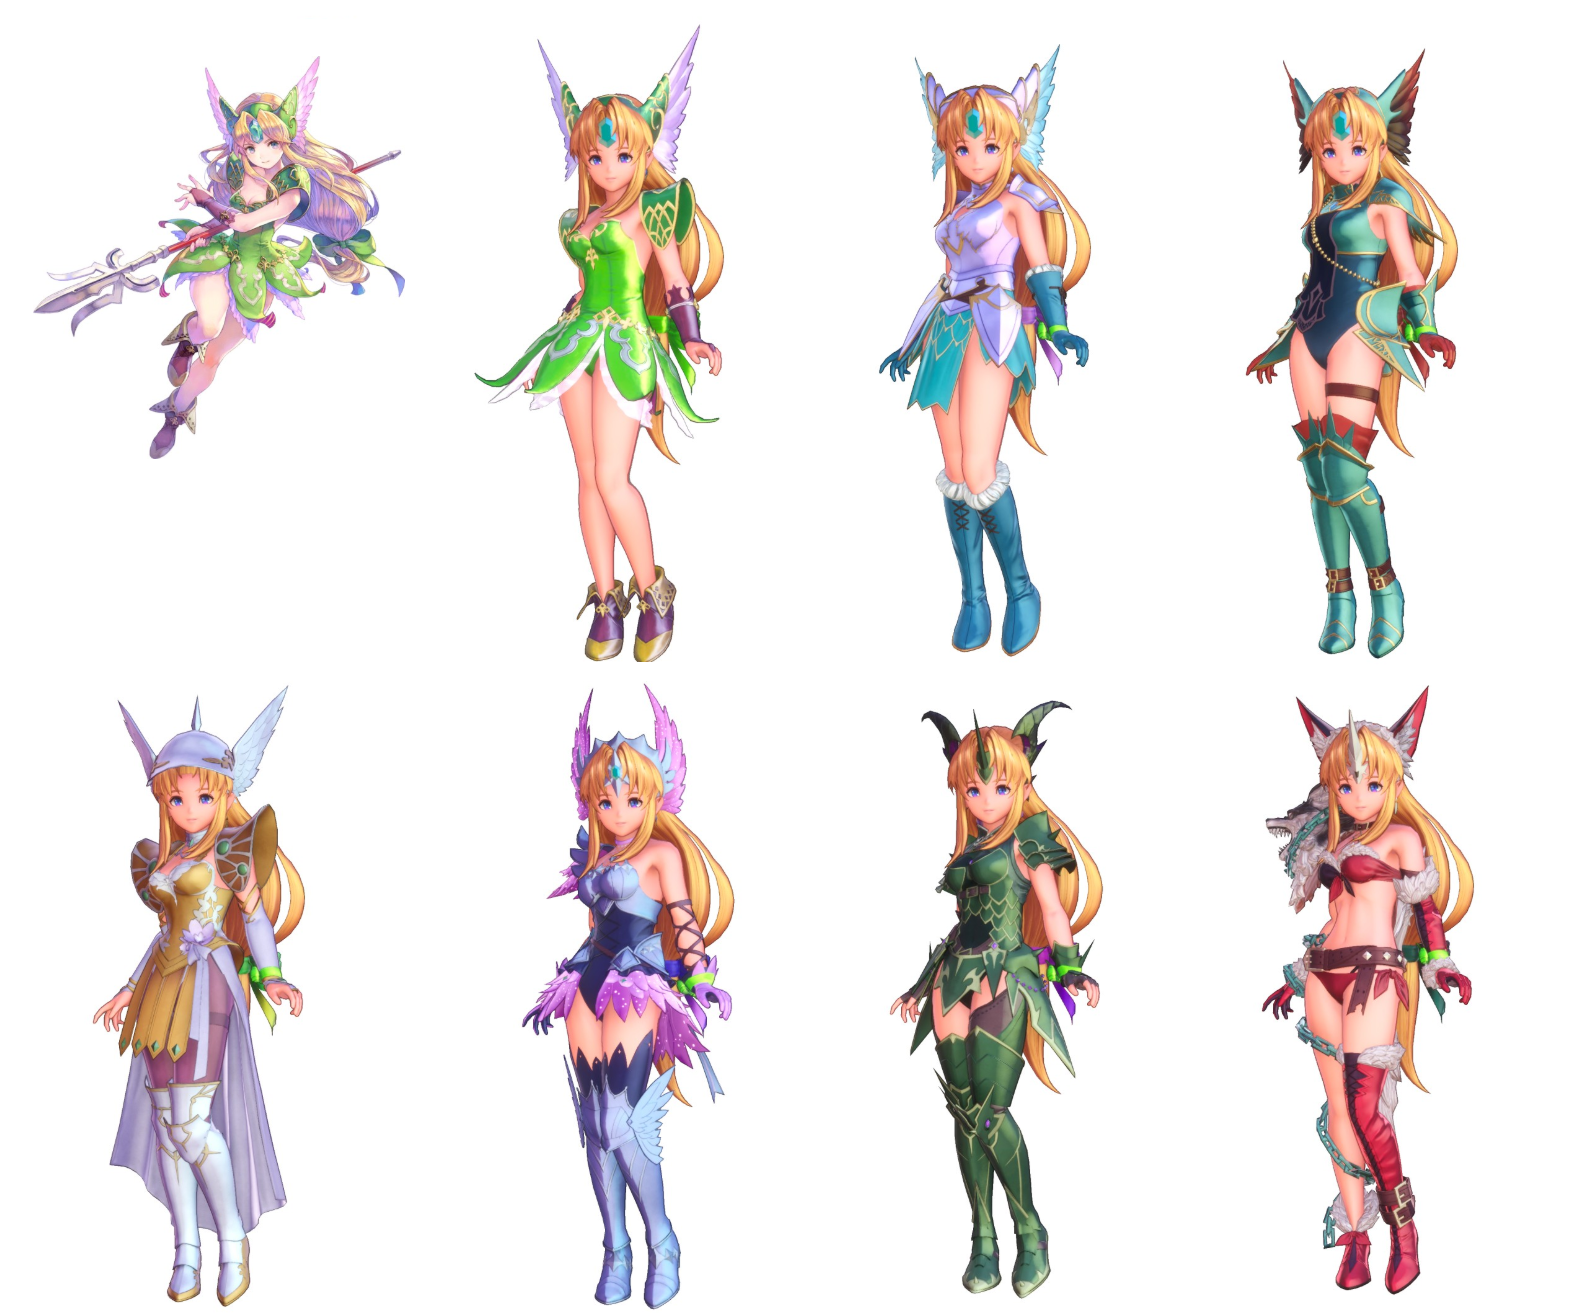 Reisz Trials of Mana characters and classes